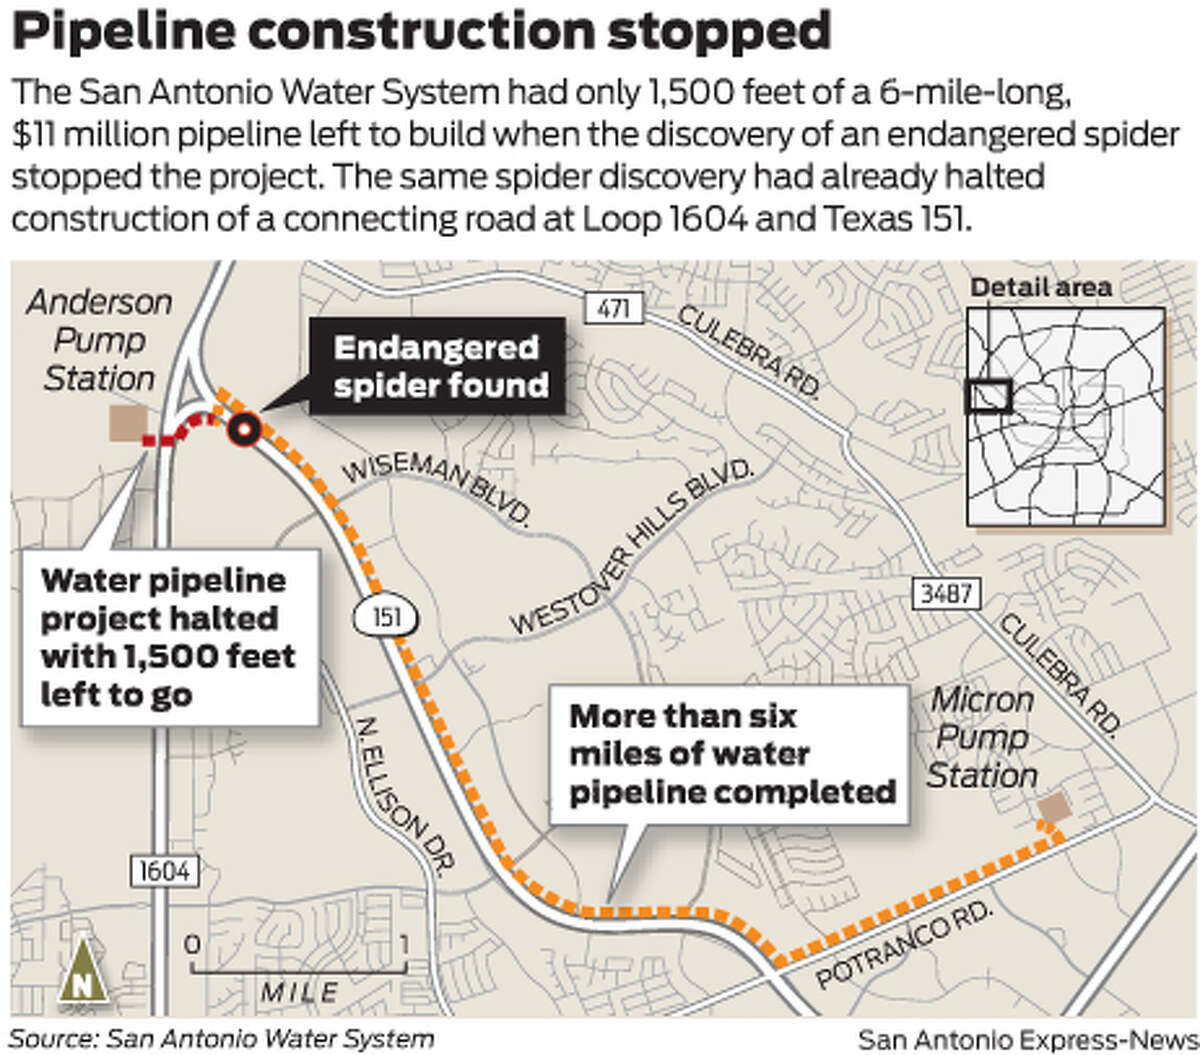 The San Antonio Water System had only 1,500 feet of a 6-mile-long, $11 million pipeline left to build when the discovery of an endangered spider stopped the project. The same spider discovery had already halted construction of a connecting road at Loop 1604 and Texas 151.